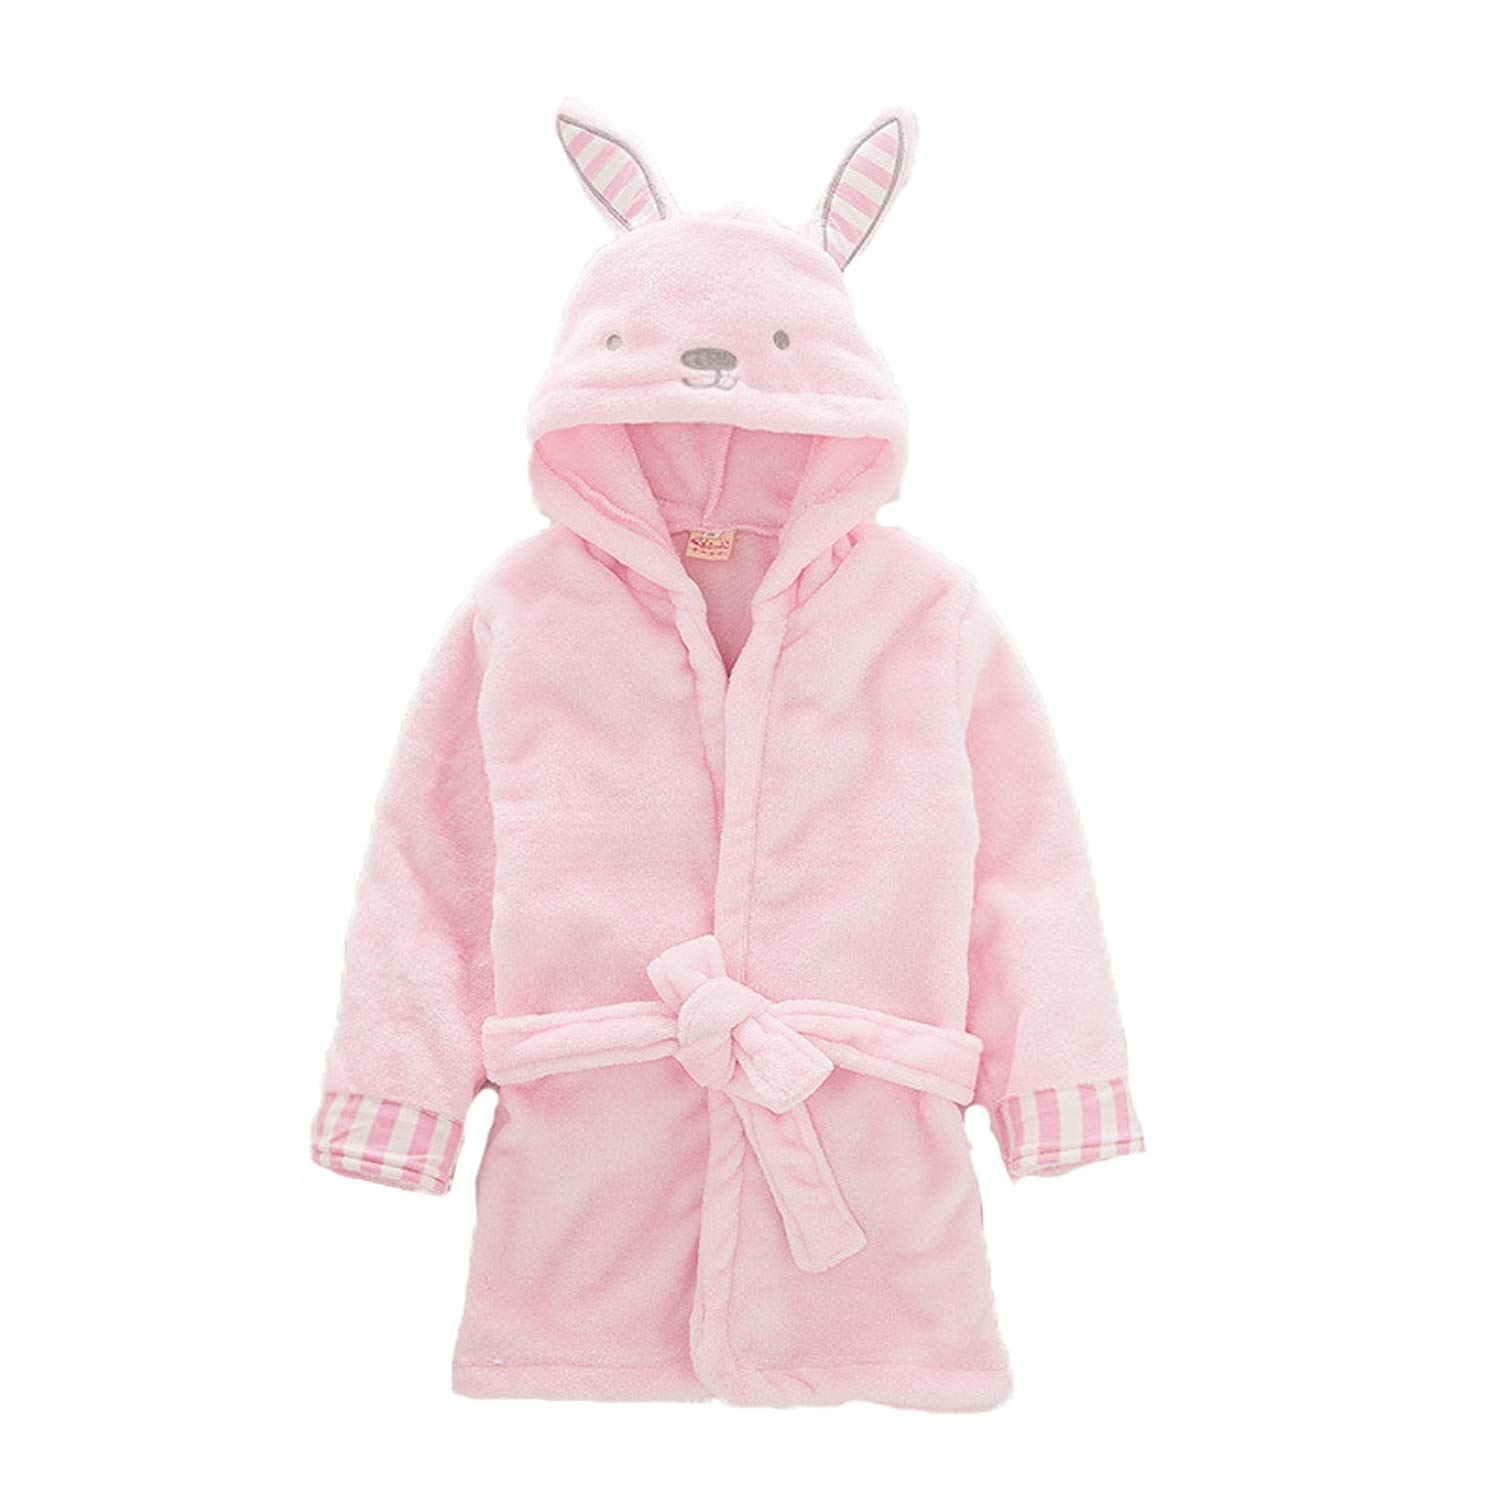 Plush Hooded Robe for Kids Soft Fleece Animal Bathrobe Sleepwear Pajamas for Toddler Girls and Boys 2-6T